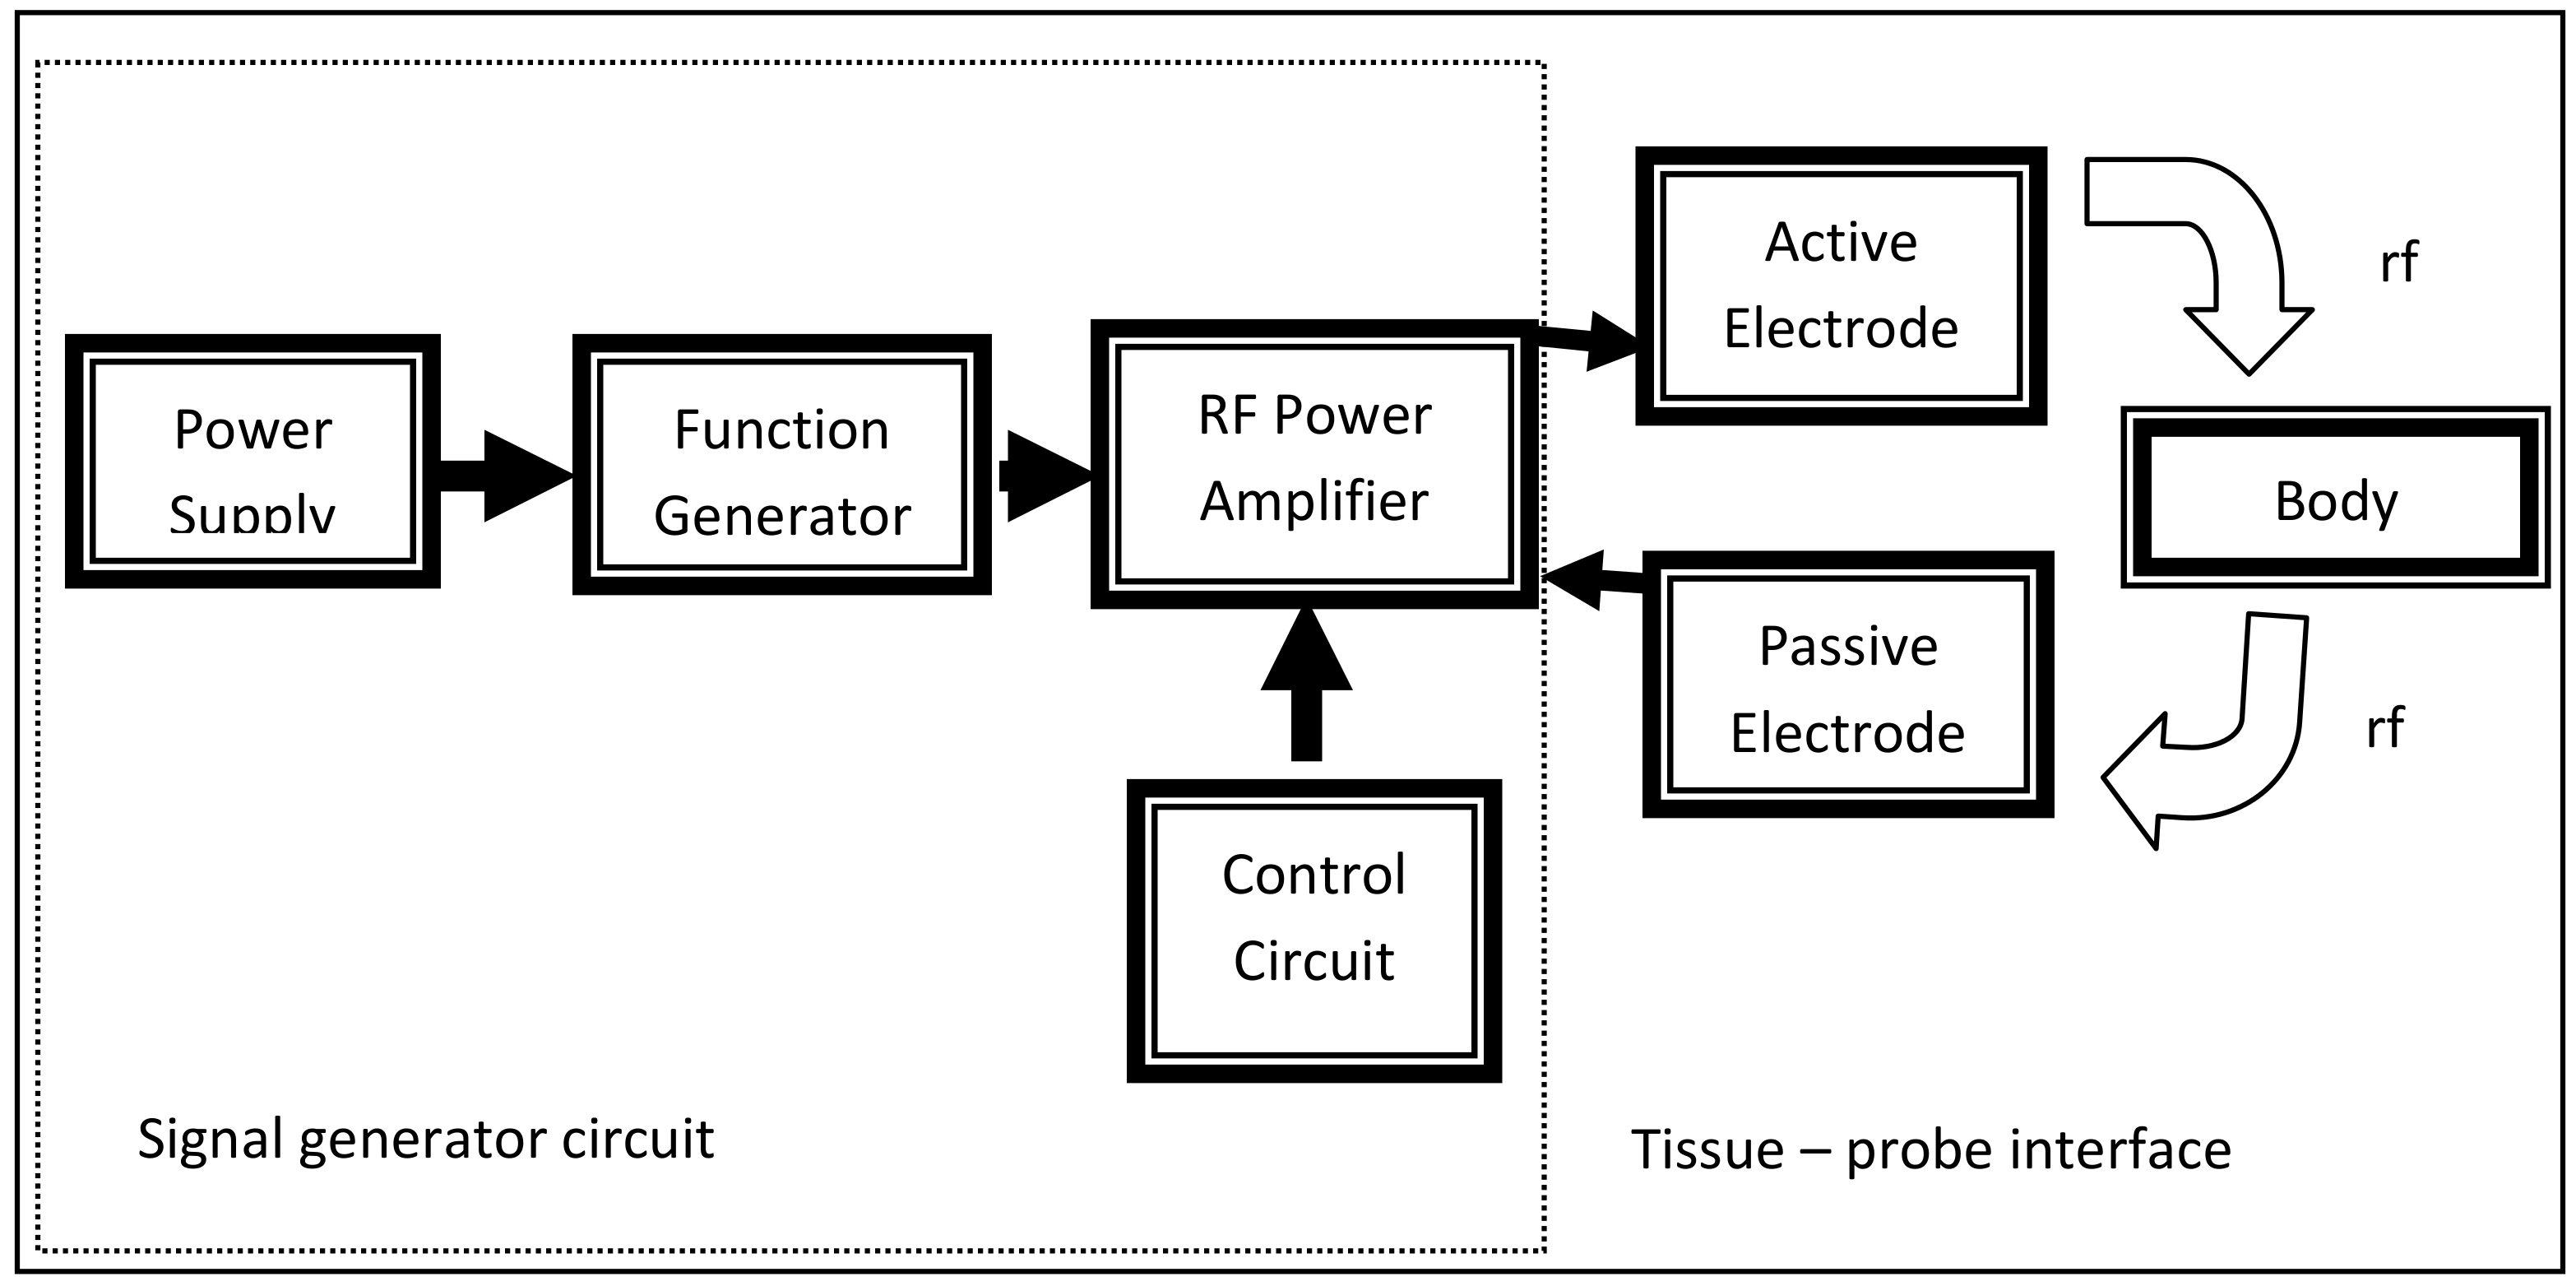 All About Ultrasound System Design Resources And Block Diagram Ticom Sbd Power Over Ethernet